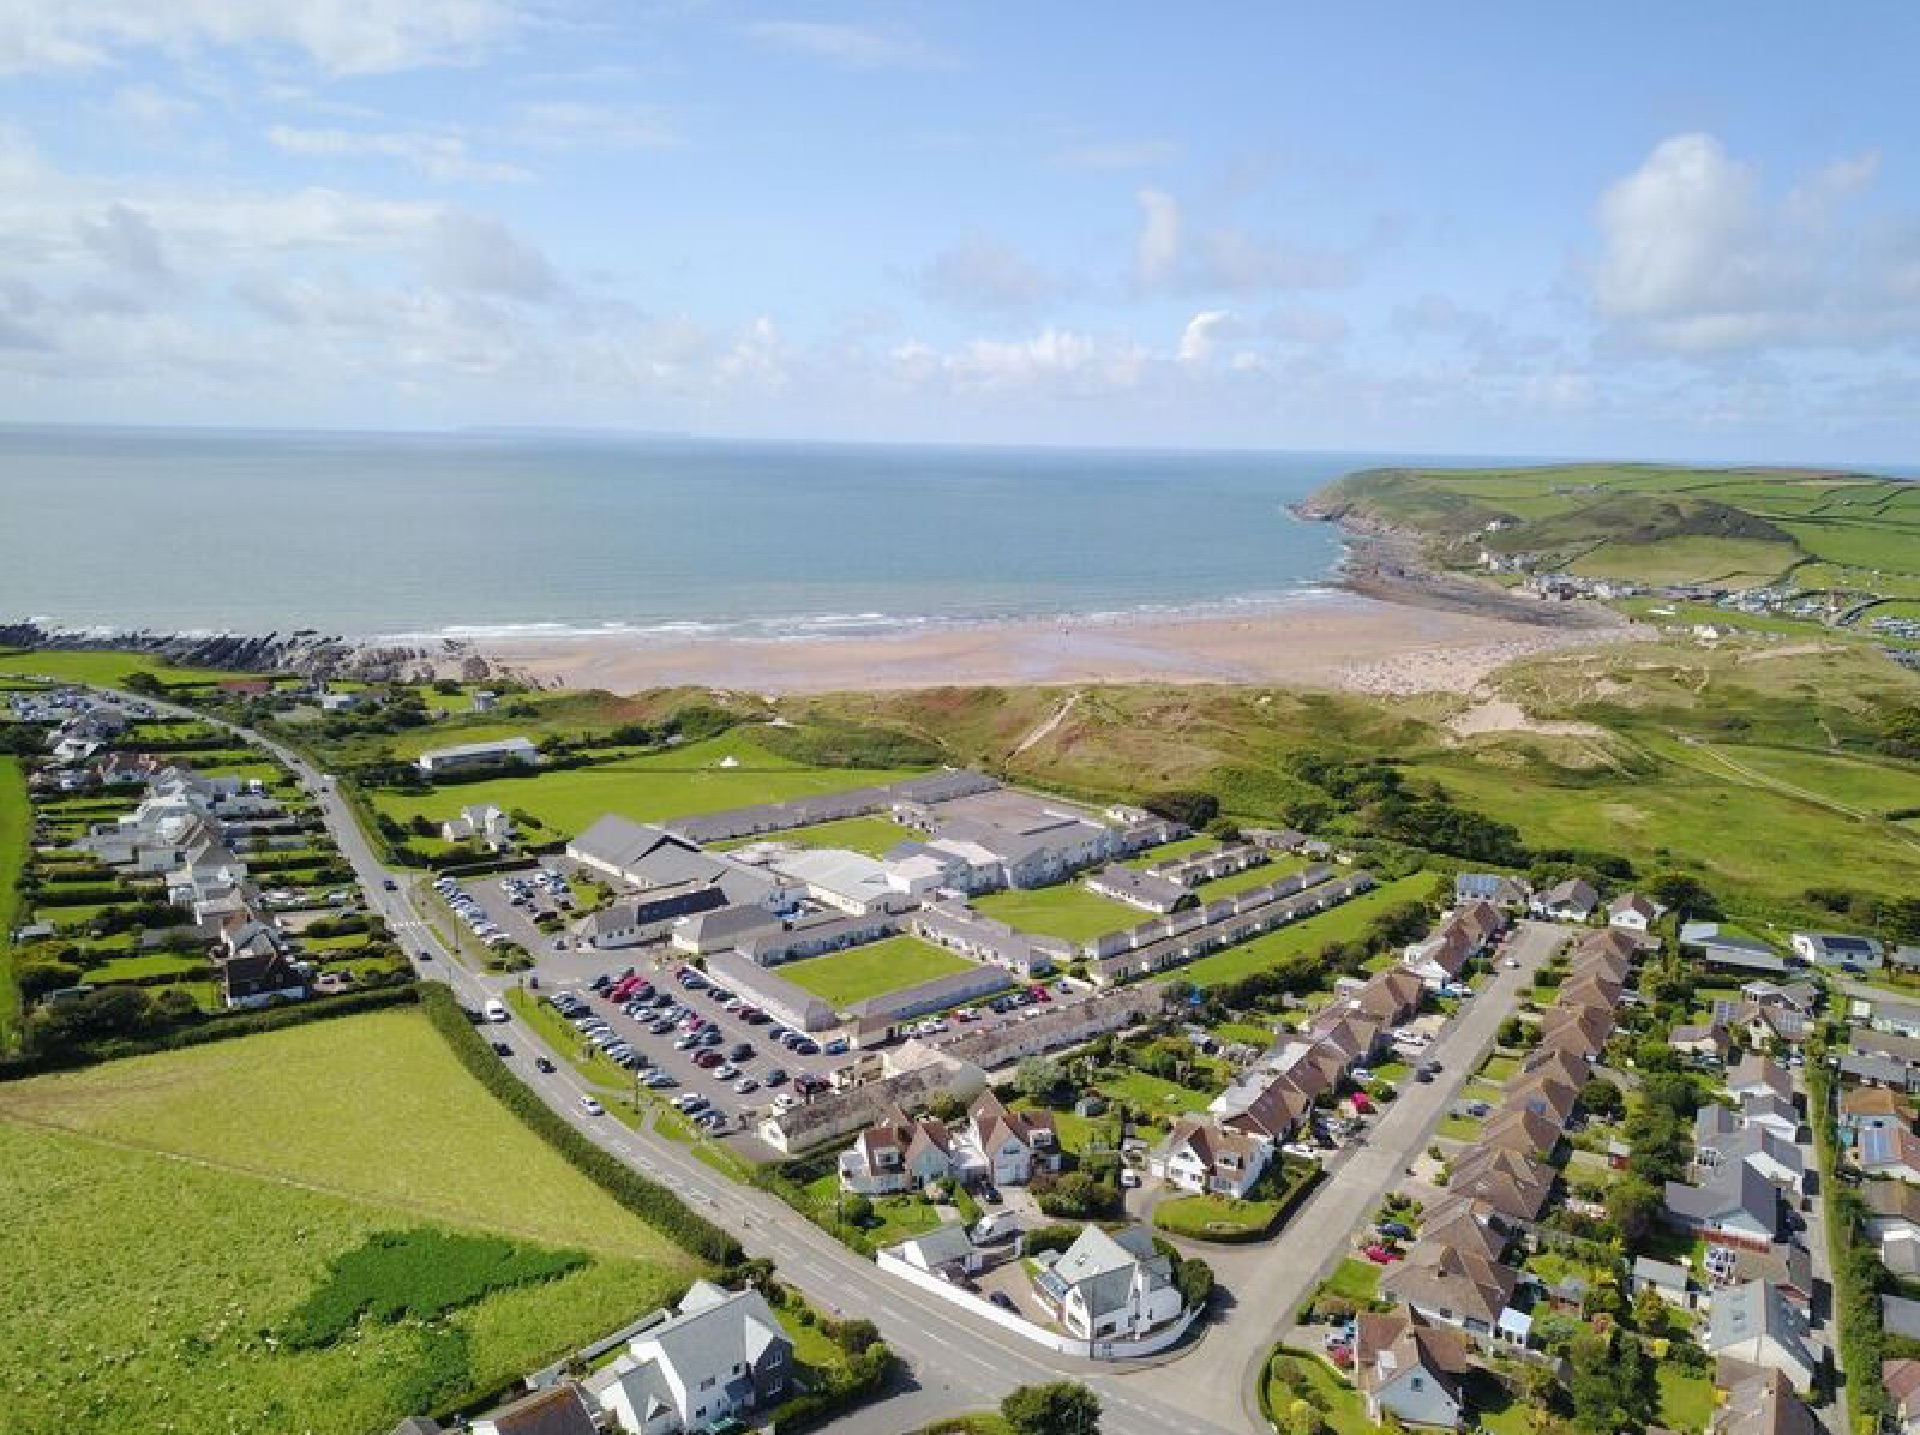 Croyde Bay resort - drone shot of the site looking down at the lodges and beach